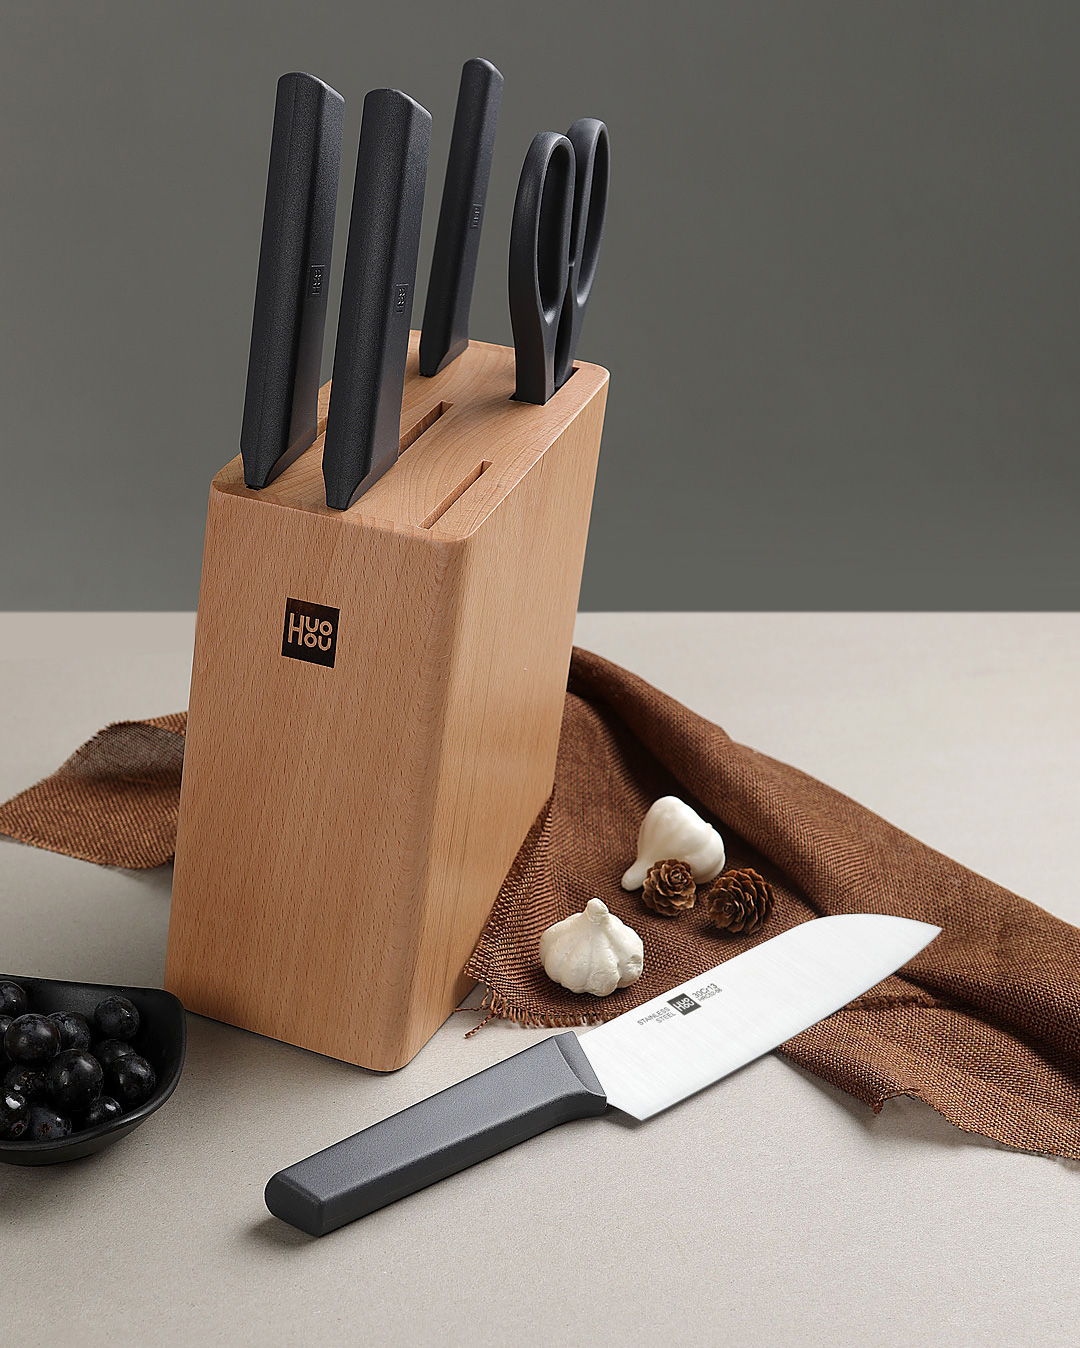 HuoHou Youth Edition 6-in-1 Stainless Steel Knife Set